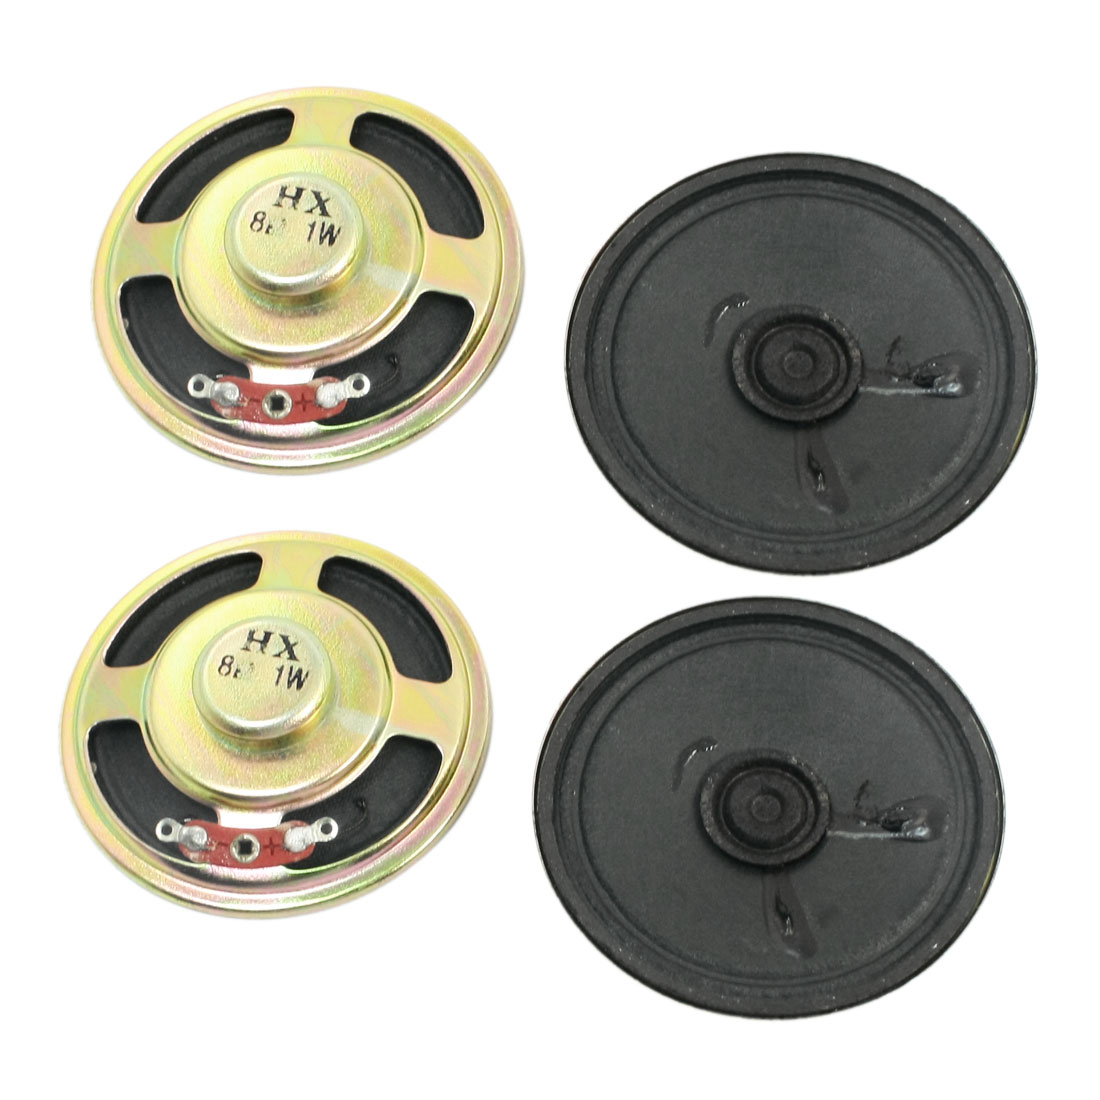 Music Player Part Magnetic Sealed Type Round Metal Speaker Loudspeaker Amplifier 8 Ohm 1W 57mm Dia 4Pcs